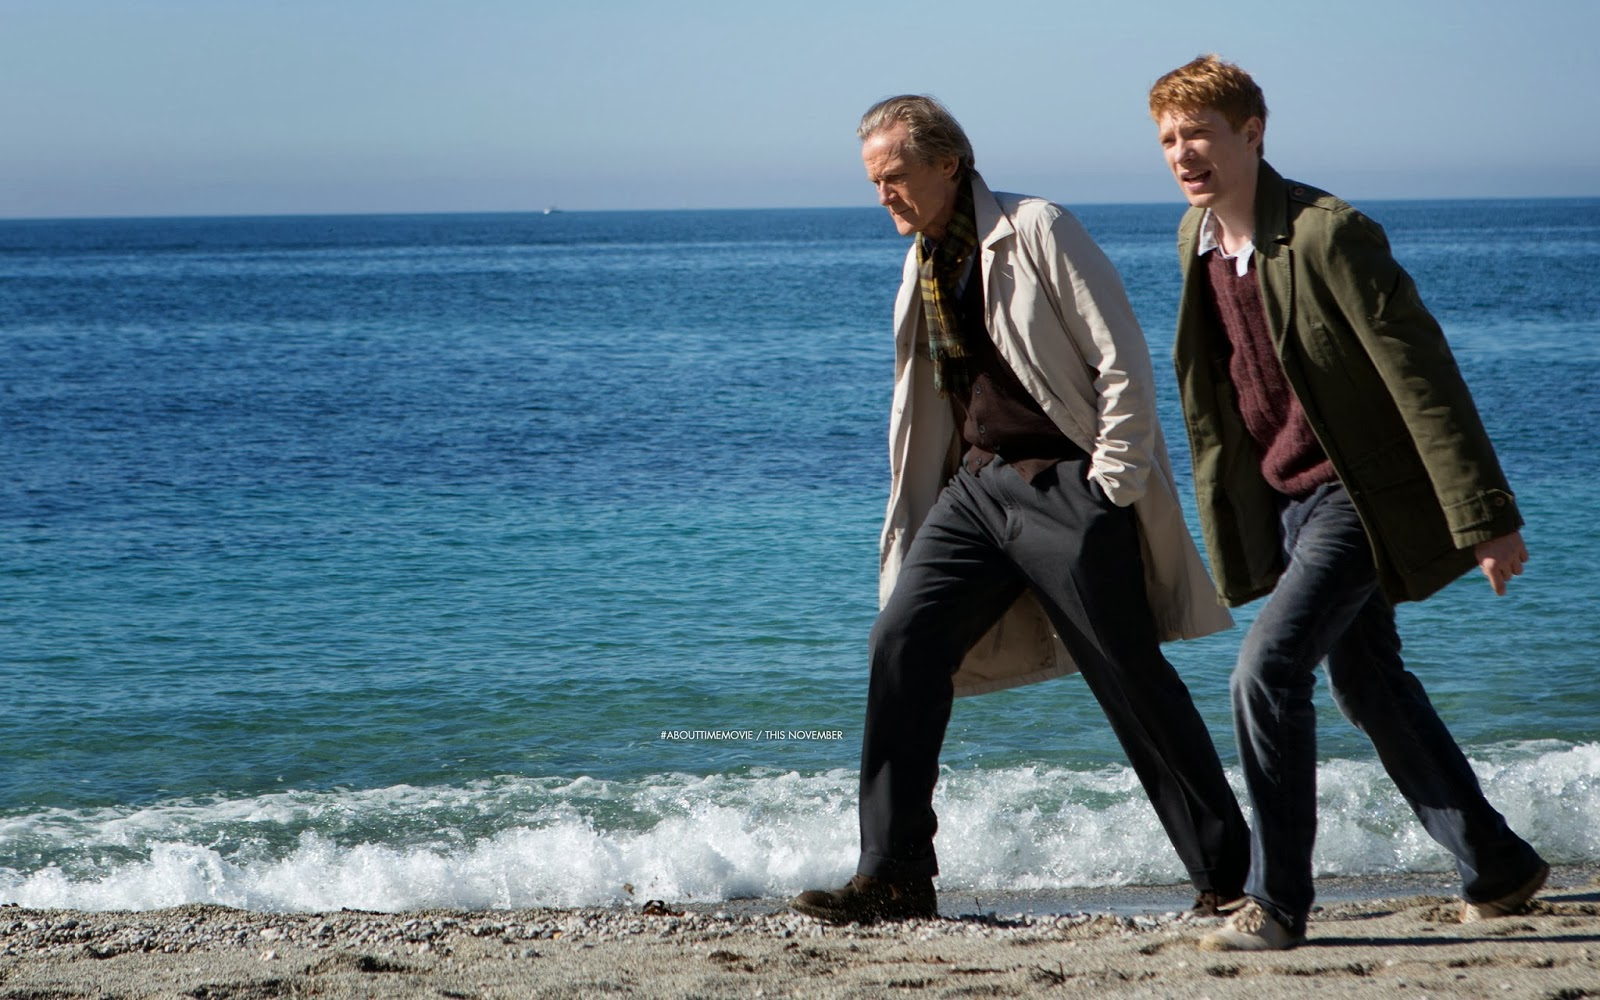 About Time Movie 2013 Quotes About Time Movie Poster 2013 About